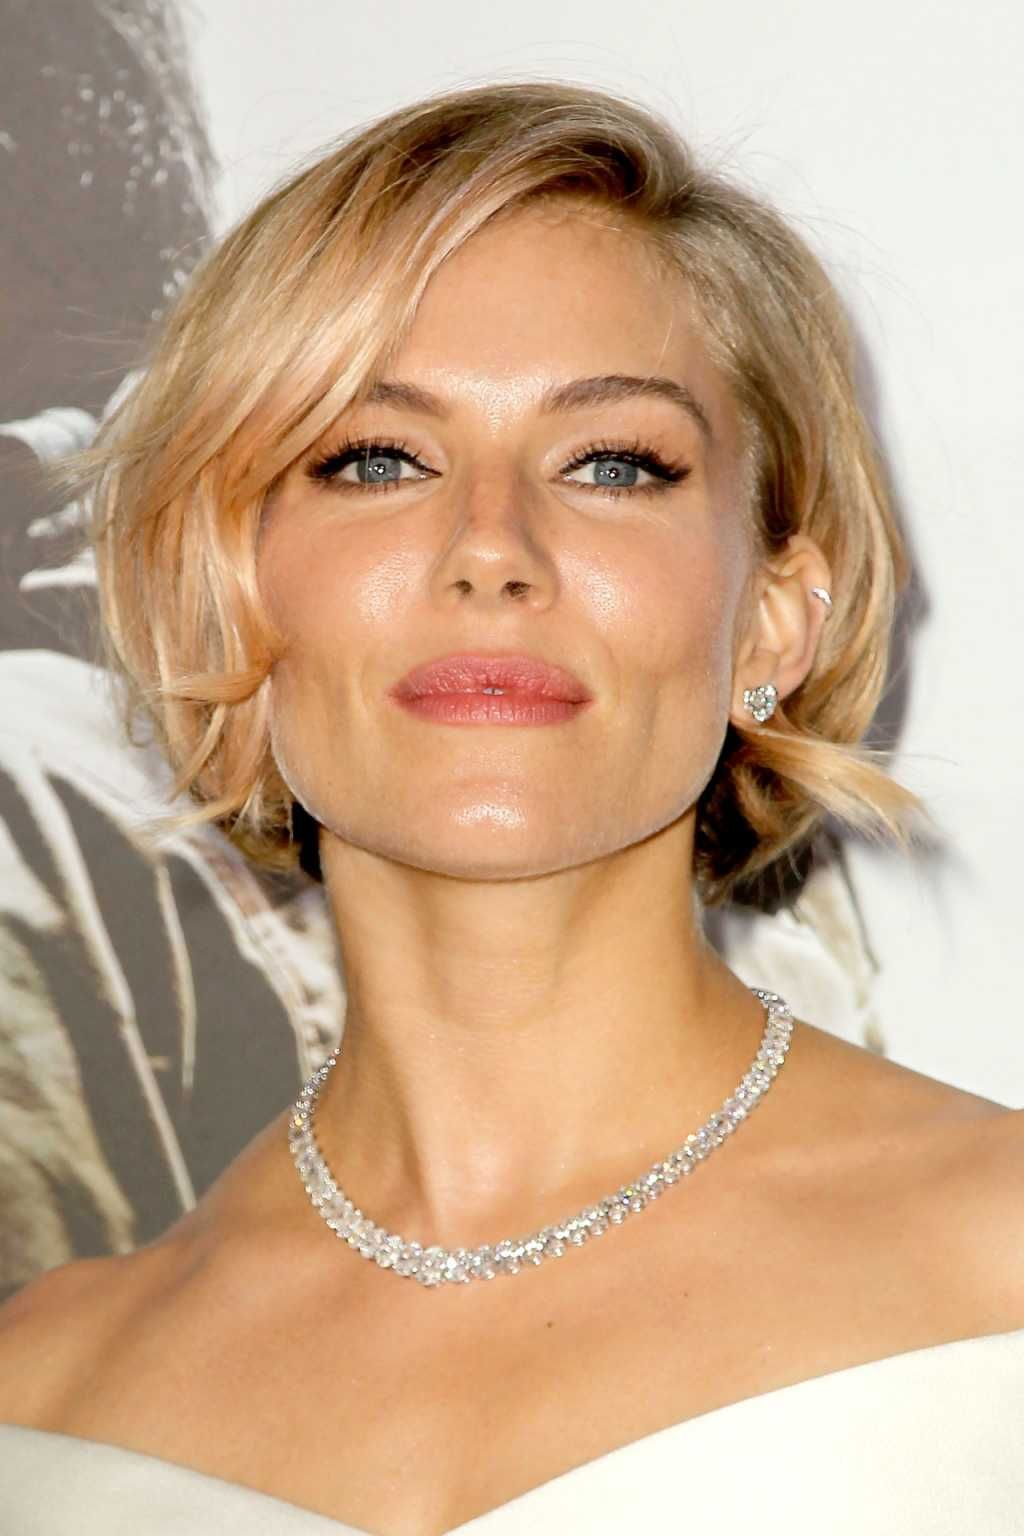 Trendy Short Bob Haircut Without Bangs One1lady Hair